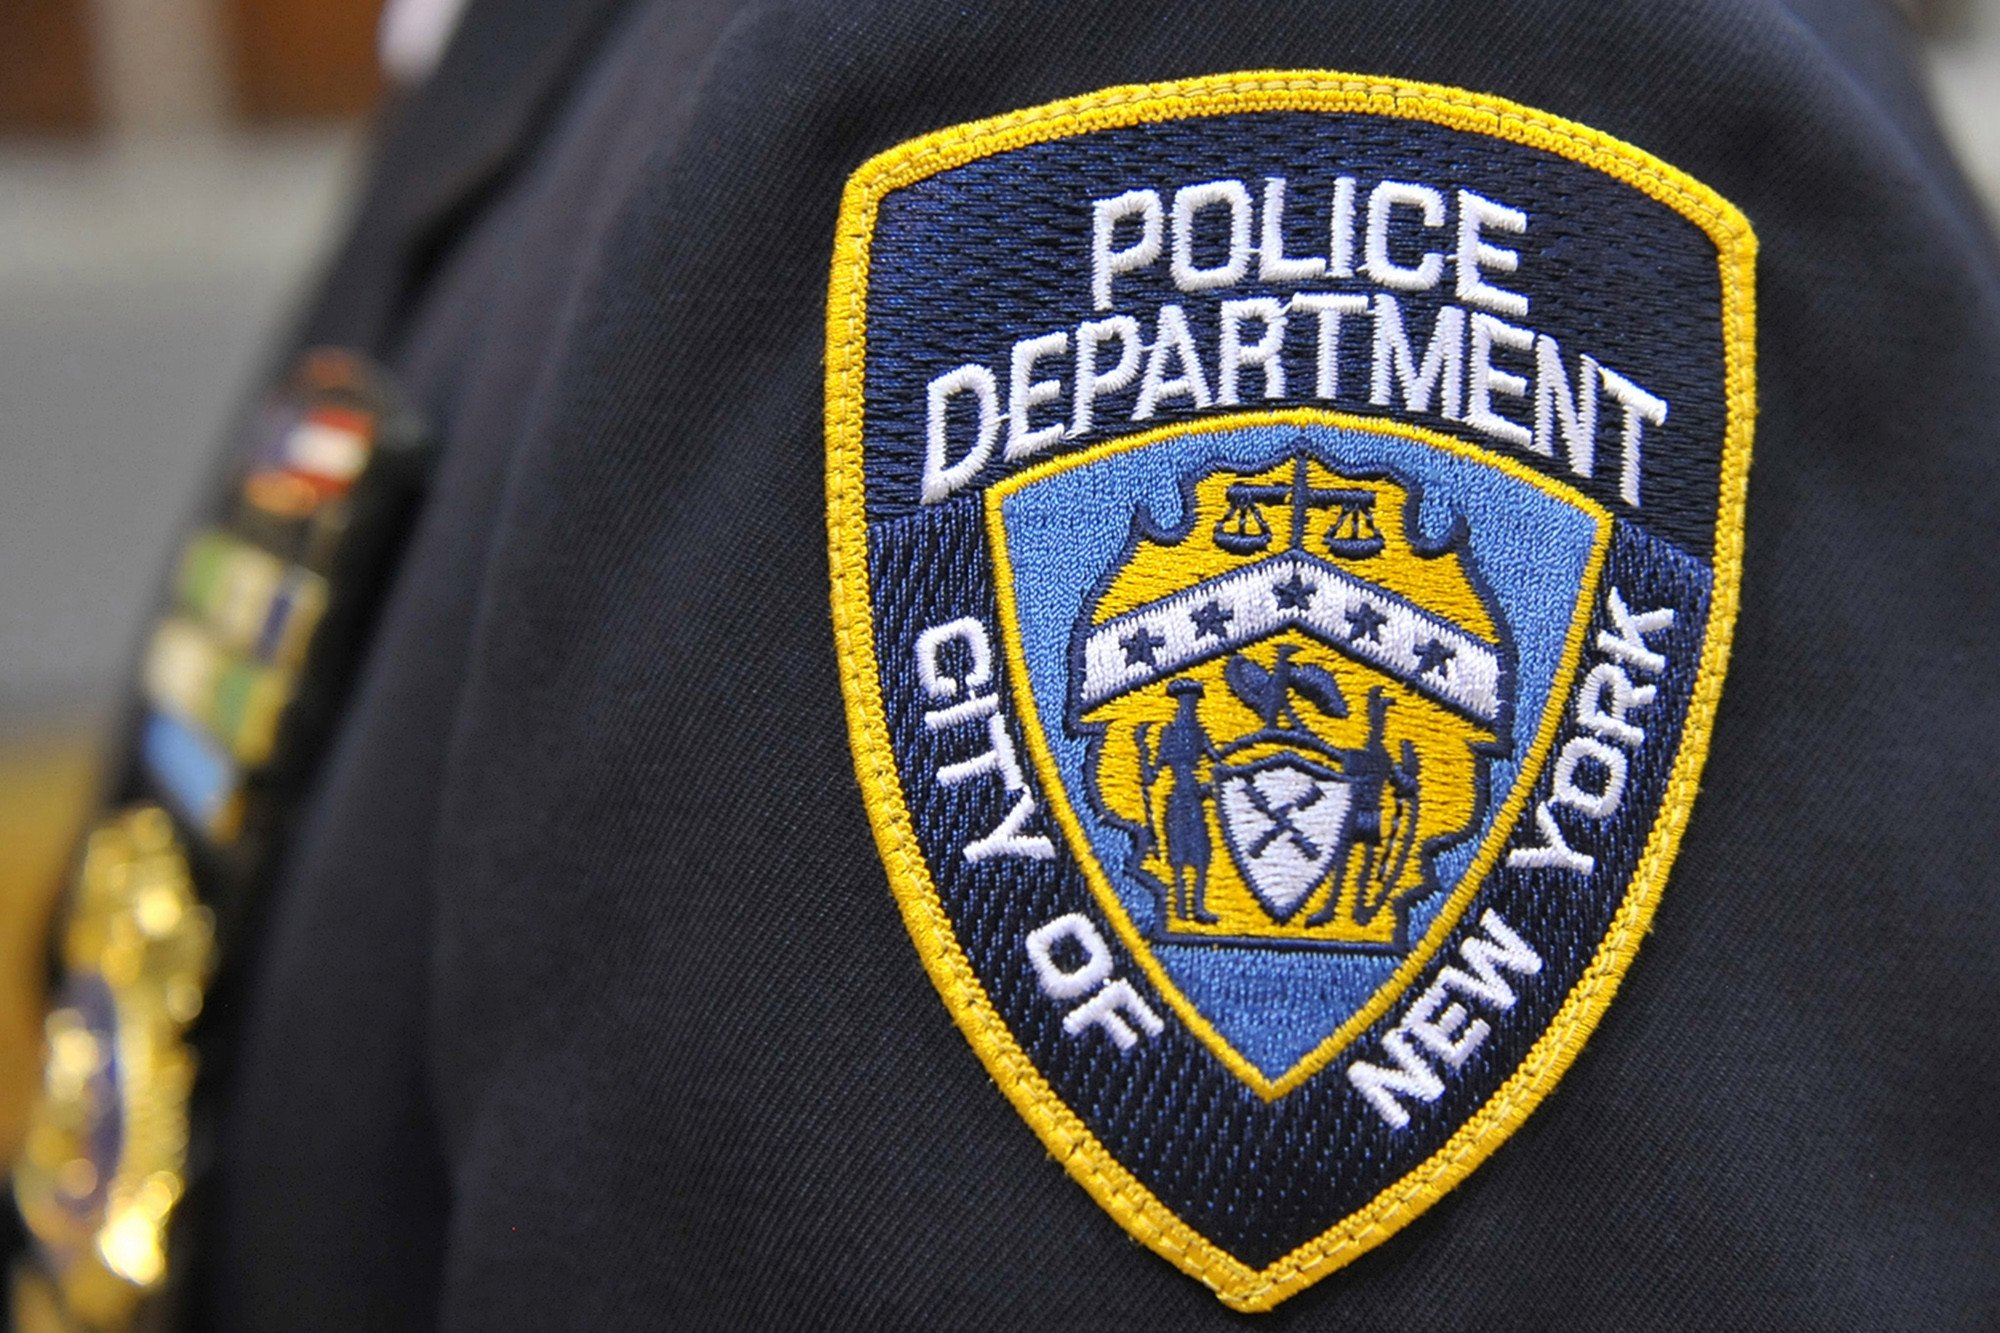 NYPD officer busted for allegedly assaulting girlfriend - Report Door